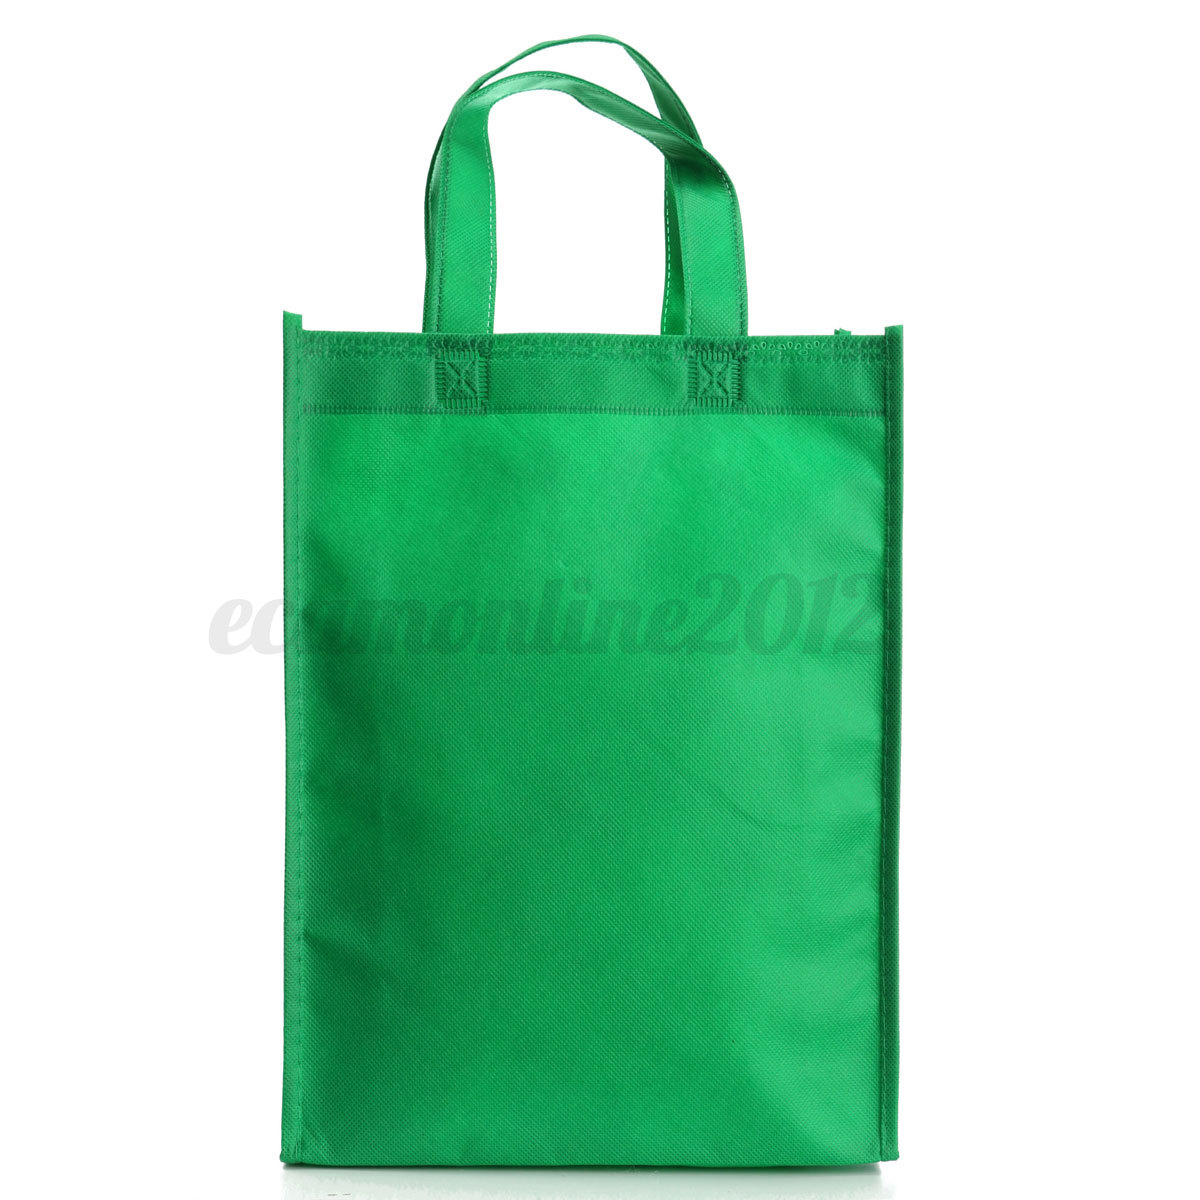 Find great deals on eBay for shopping tote bag. Shop with confidence.